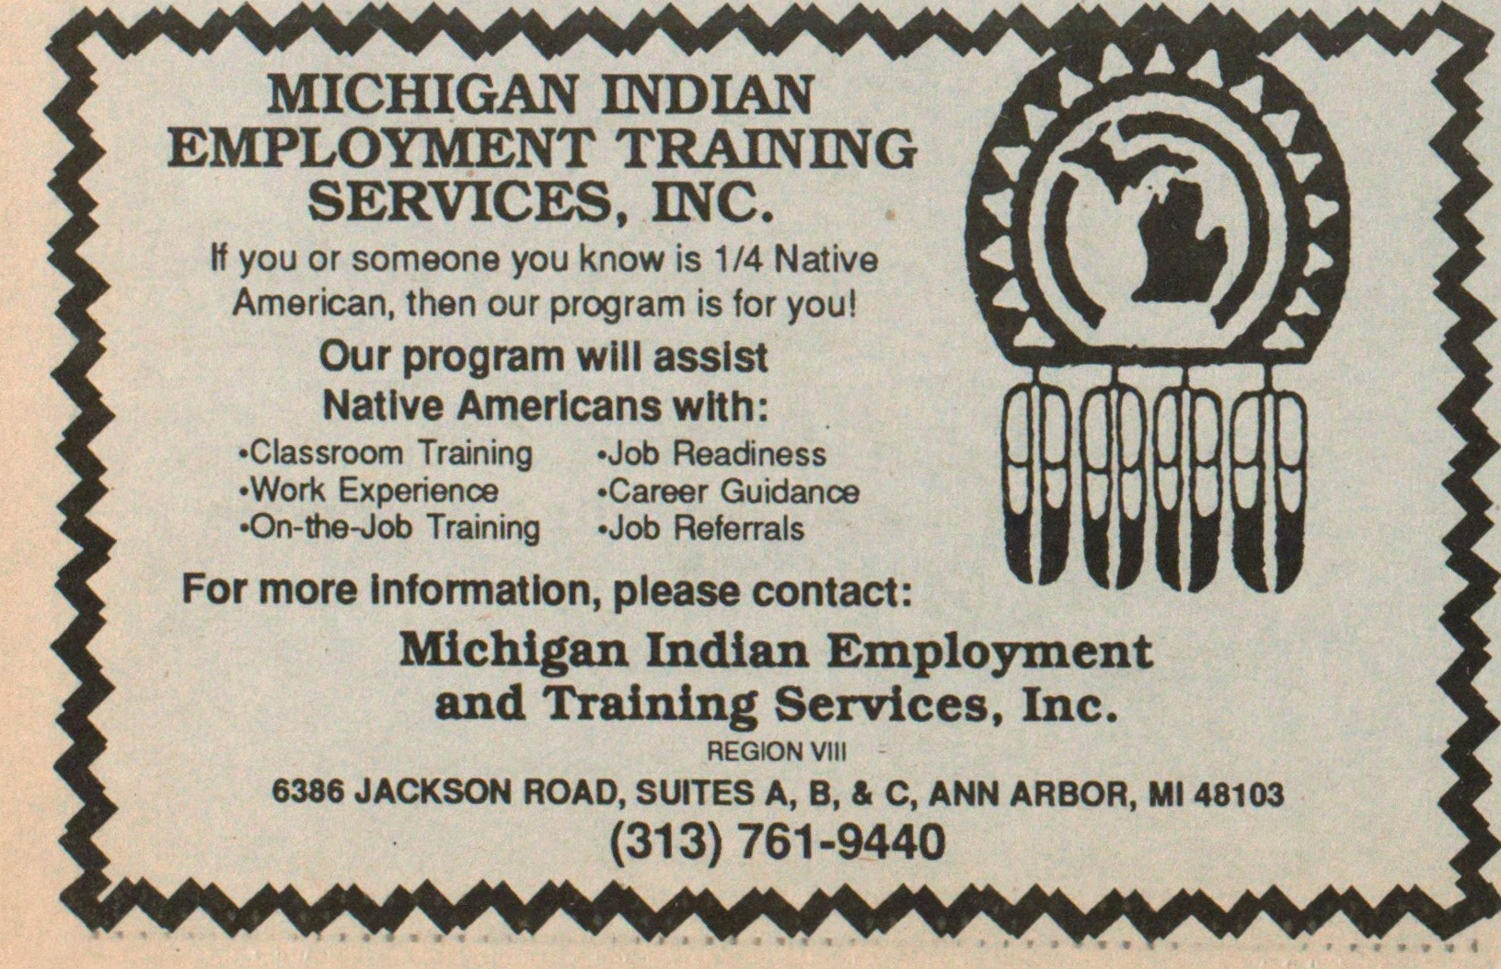 Michigan Indian Employment Training Services, Inc. image